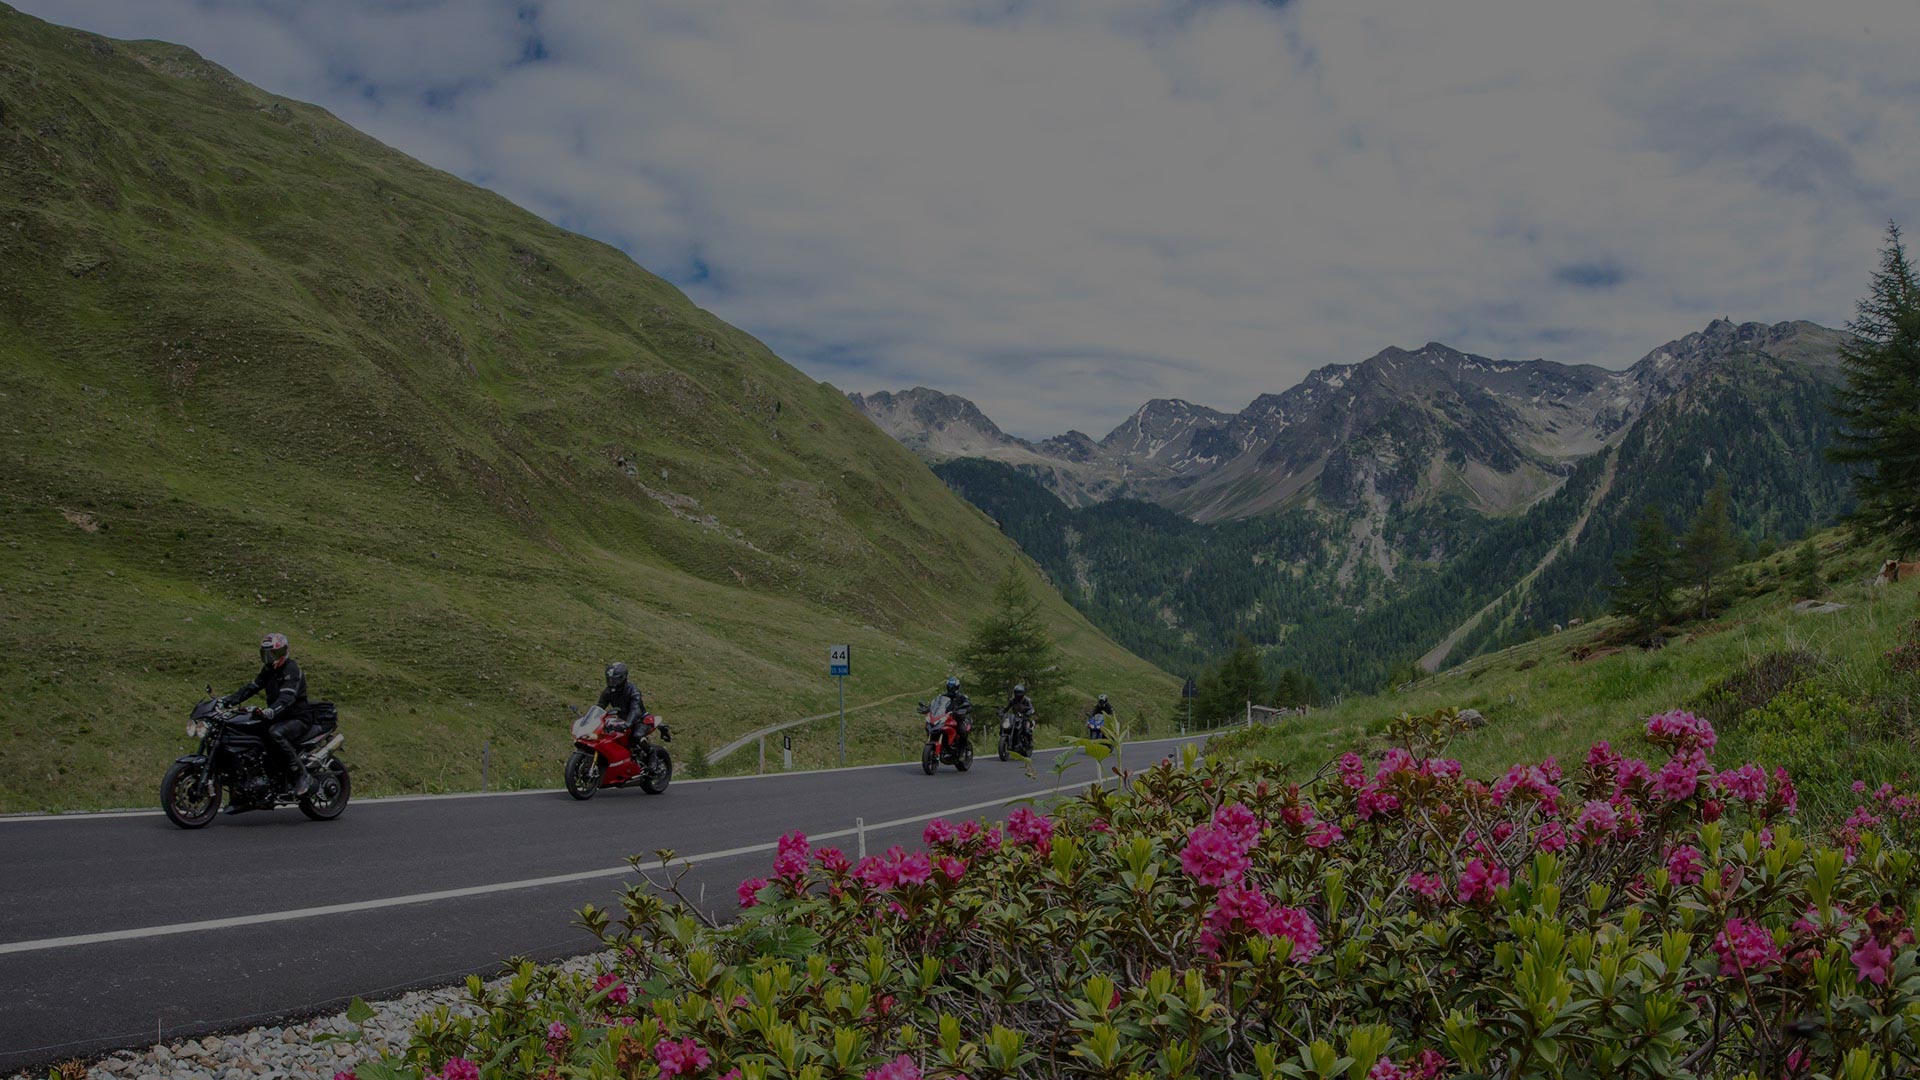 Bikerparadies im Sarntal, Südtirol - Bikers welcome